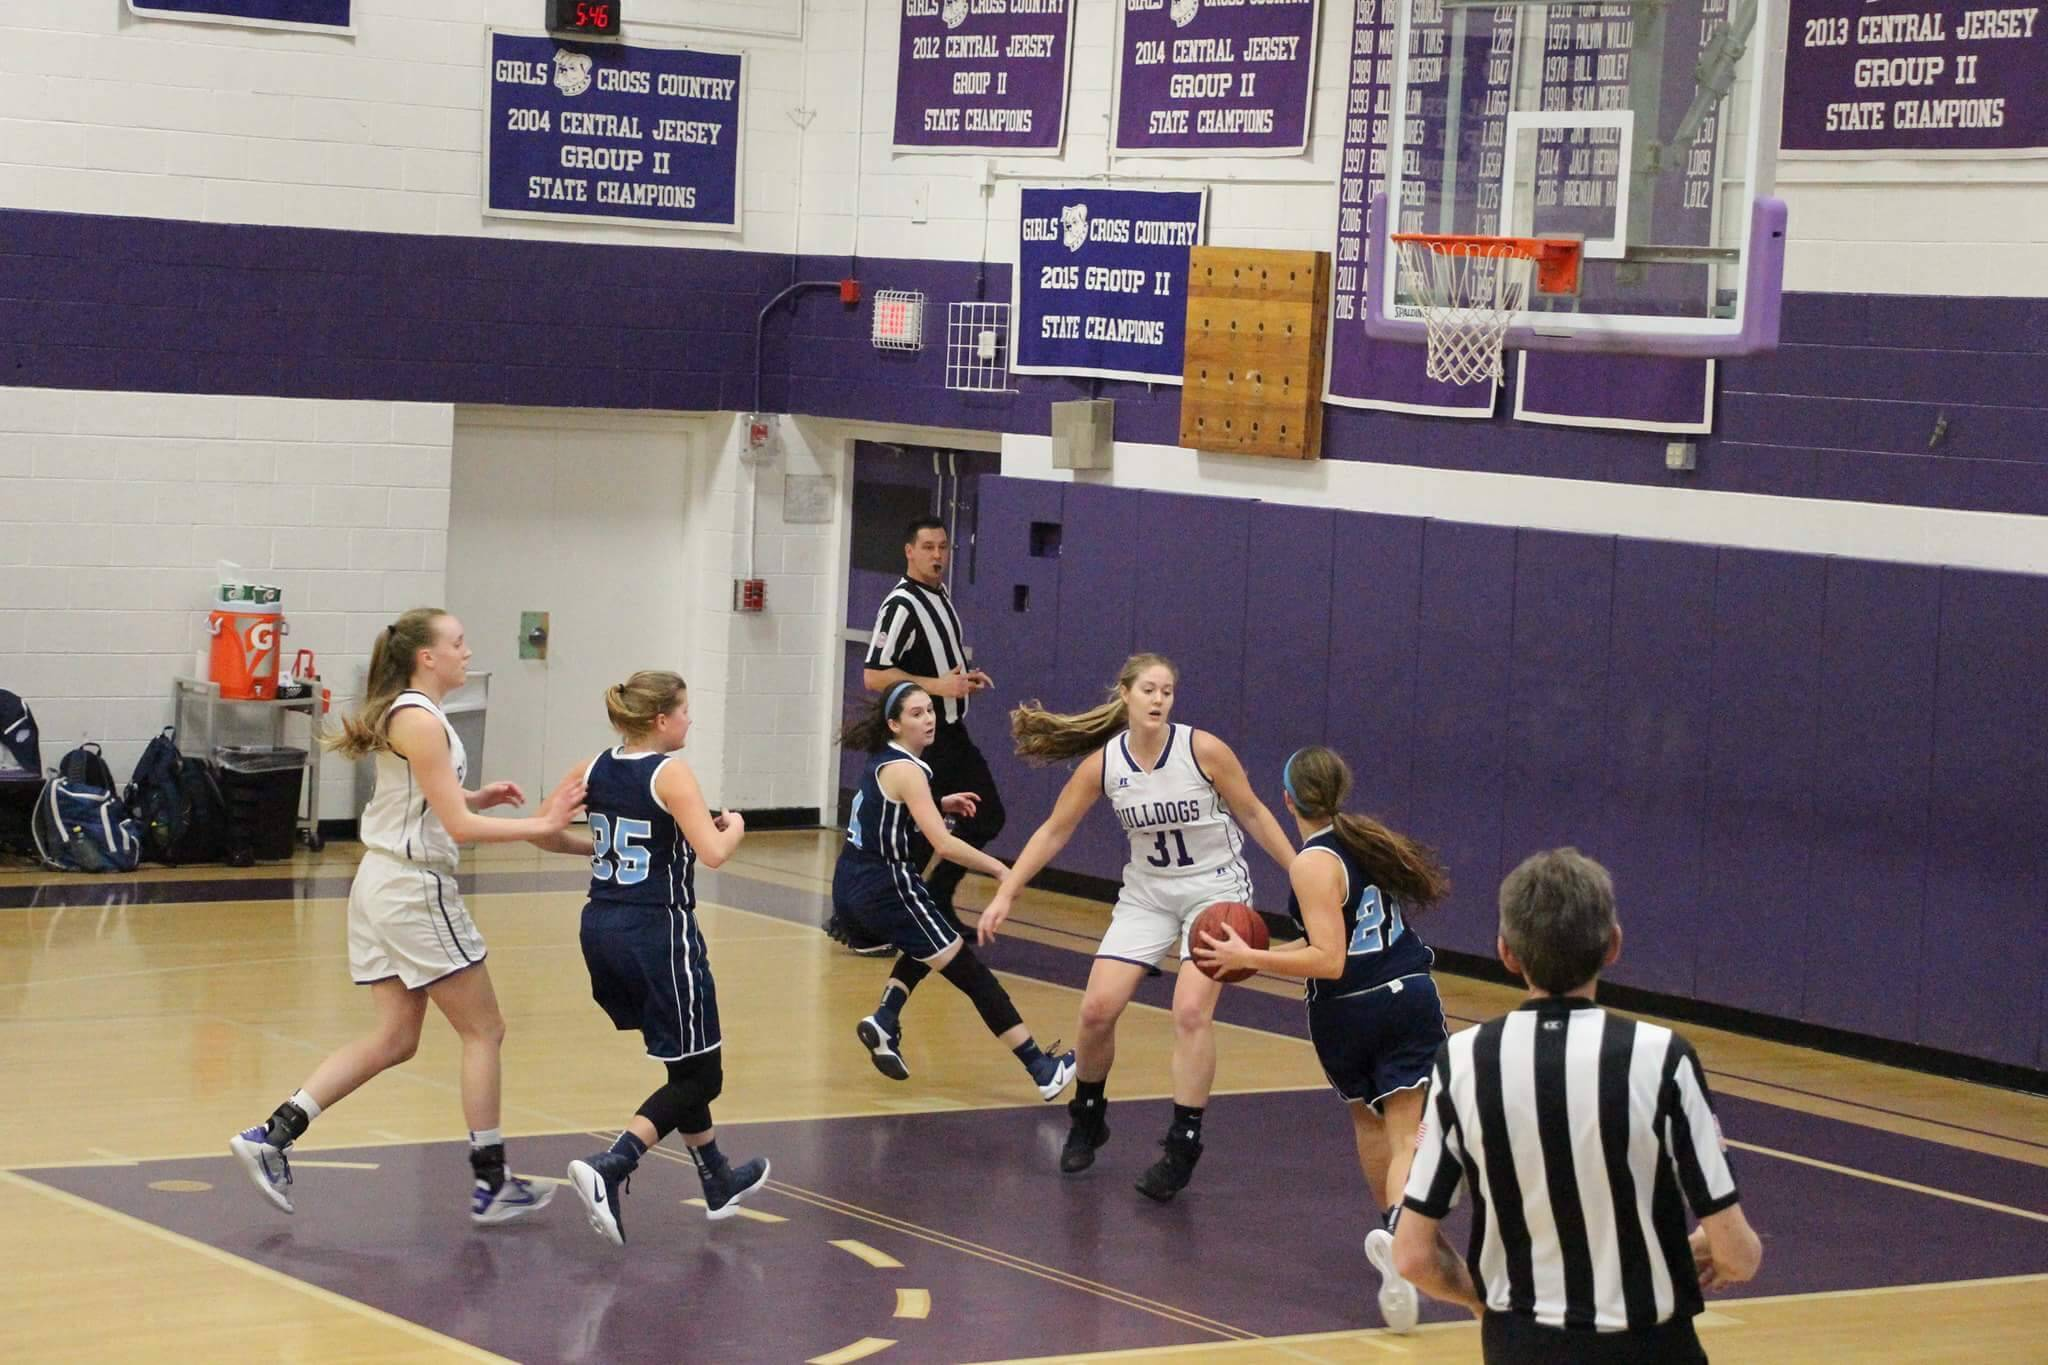 c5044af59fef09bf3ead_ALJ-Rumson_FH_NJSIAA_Central__Group_2_First_Round_Girls_Varsity_Basketball__3.JPG